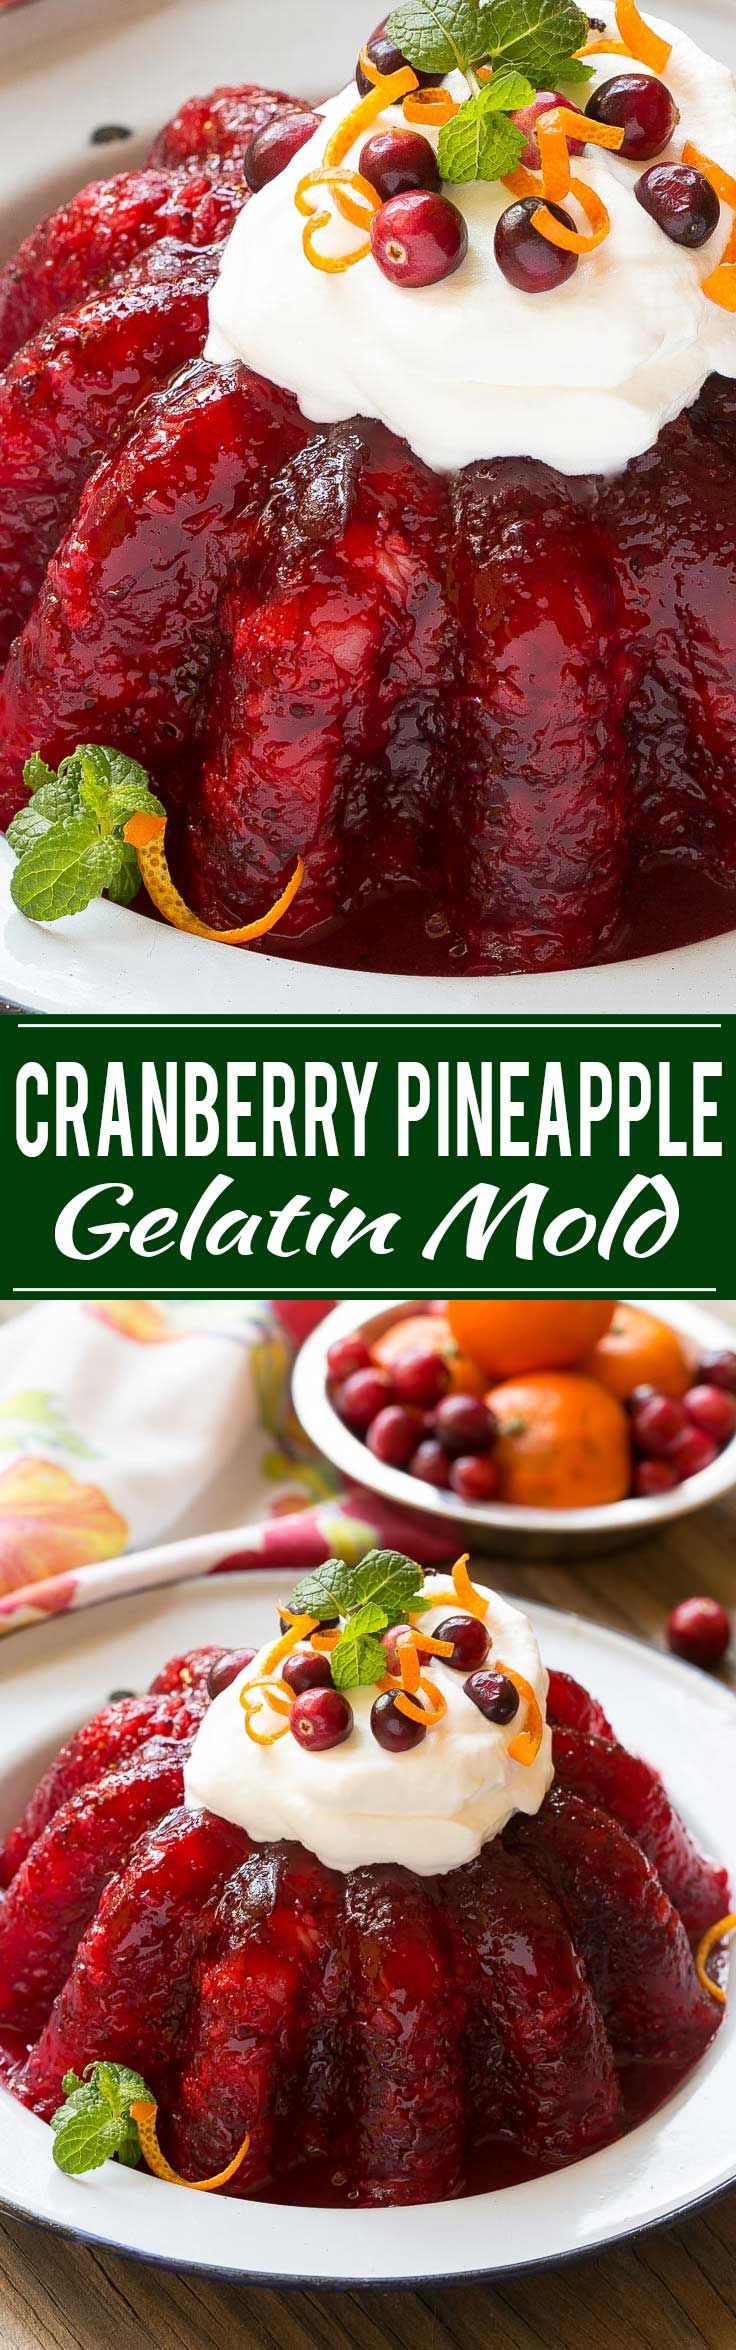 Raspberry gelatin is combined with cranberry sauce, pineapple and orange zest for a delicious side dish or dessert that's perfect for the holidays.